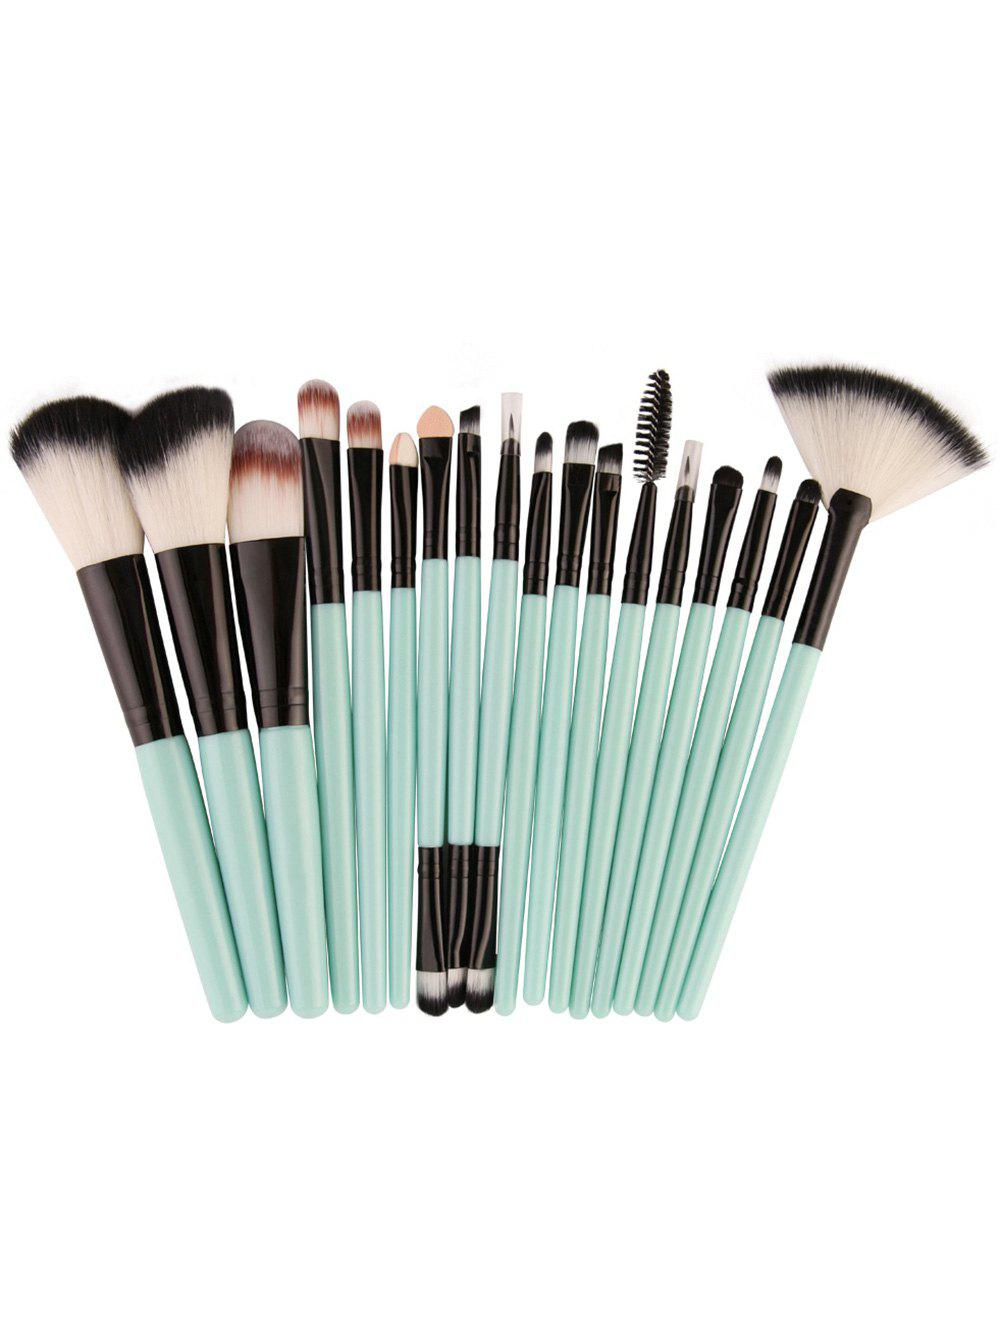 18Pcs Face Eye Makeup Brushes KitBEAUTY<br><br>Color: BLACK AND GREEN; Category: Makeup Brushes Set; Brush Hair Material: Synthetic Hair; Features: Professional; Season: Fall,Spring,Summer,Winter; Weight: 0.1300kg; Package Contents: 18 x Brushes(Pcs);